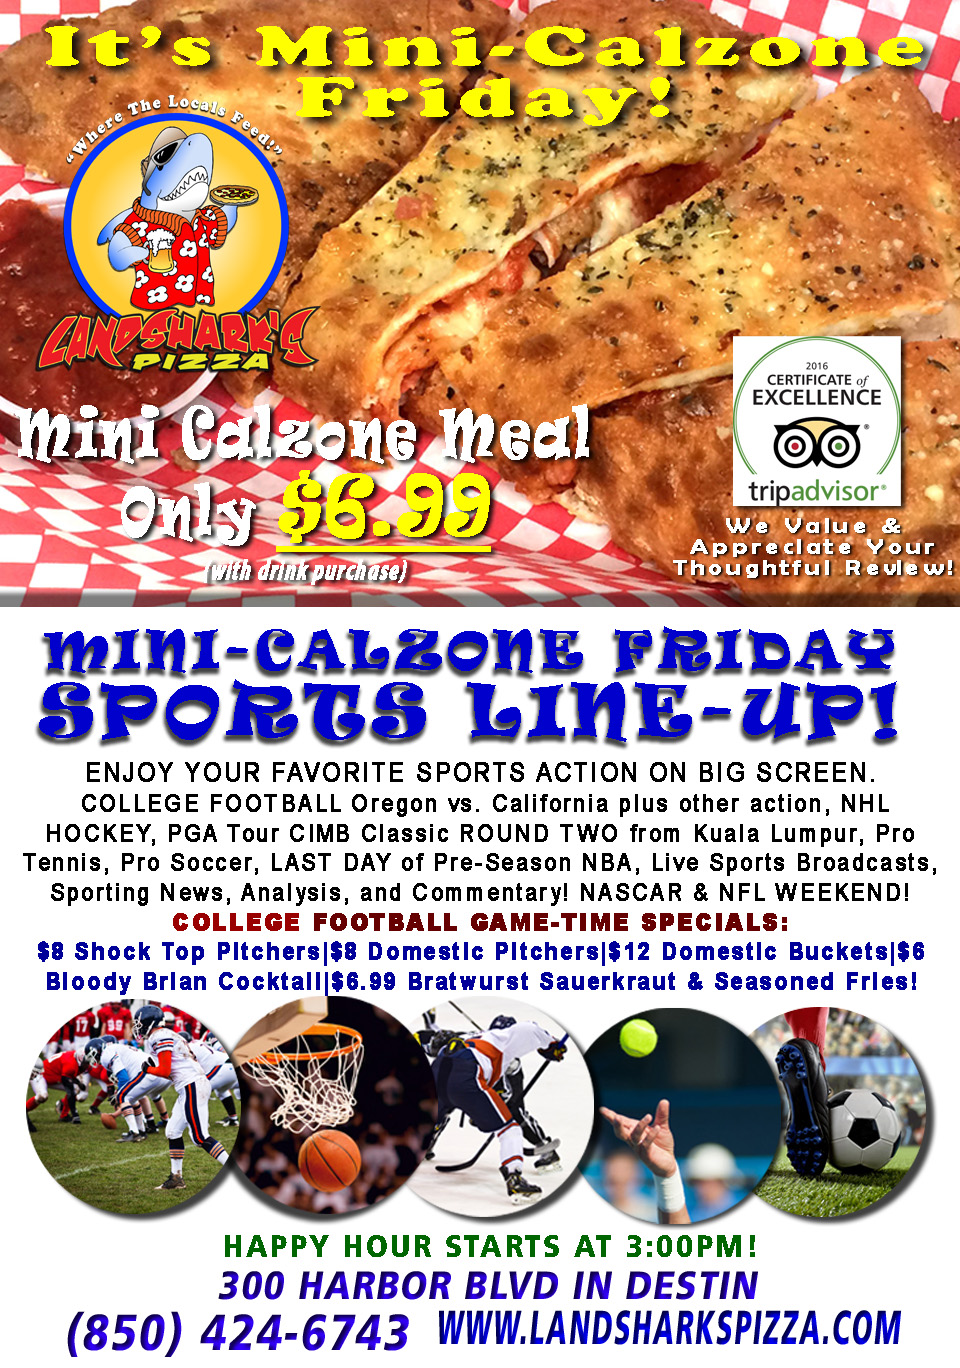 best-calzones-in-destin-fl-at-landsharks-with-college-football-10-21-16a